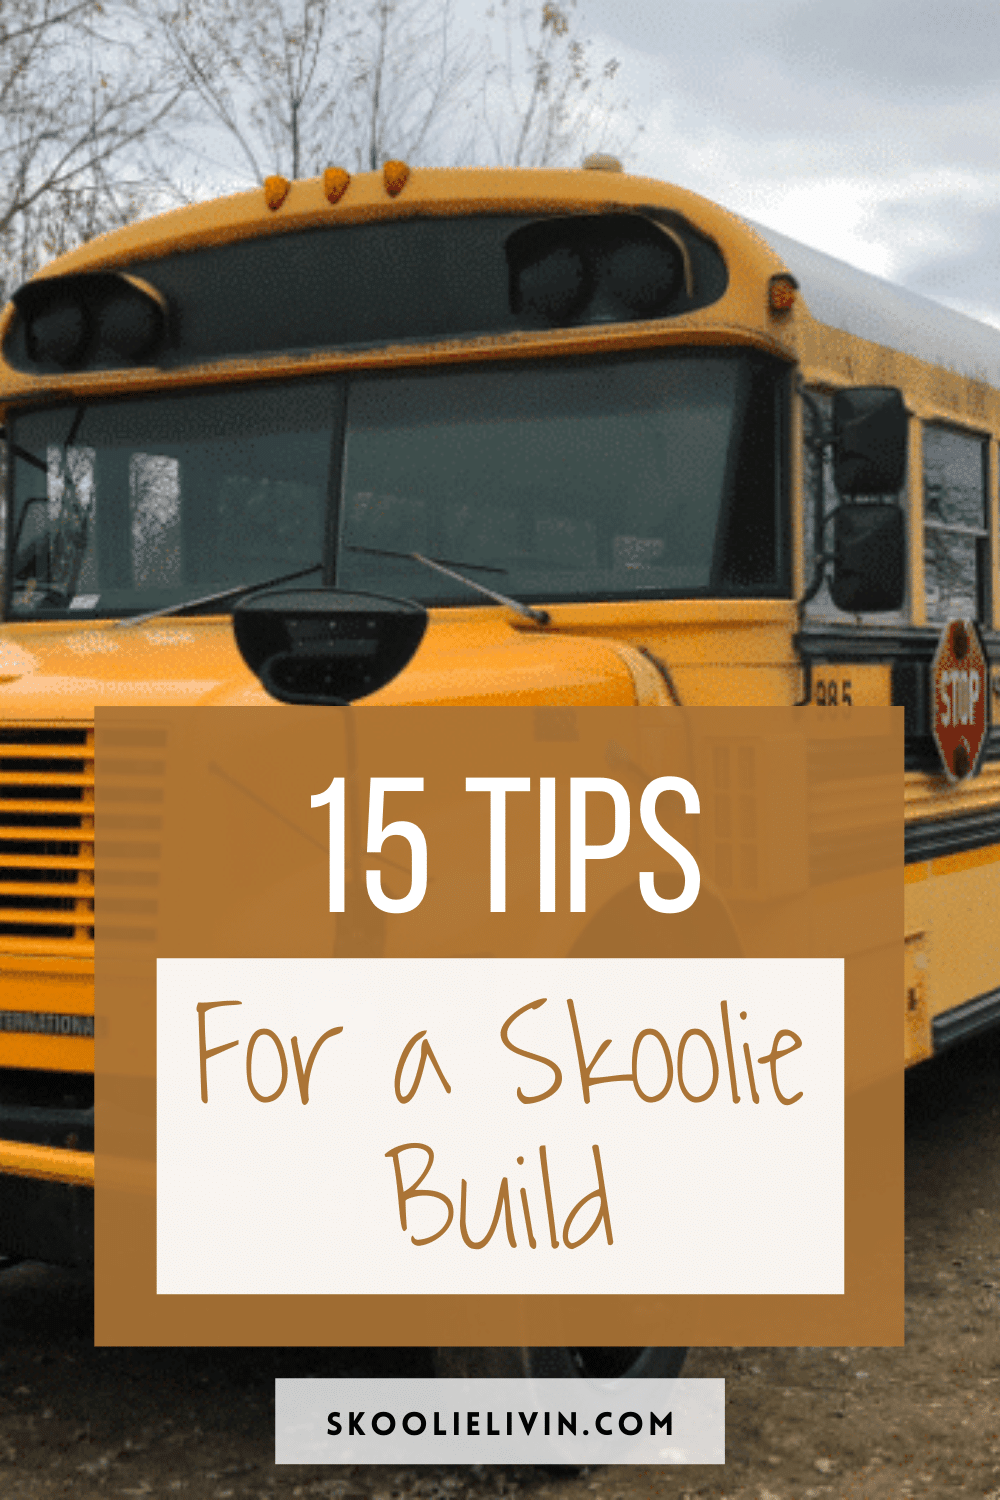 15 tips for a skoolie build